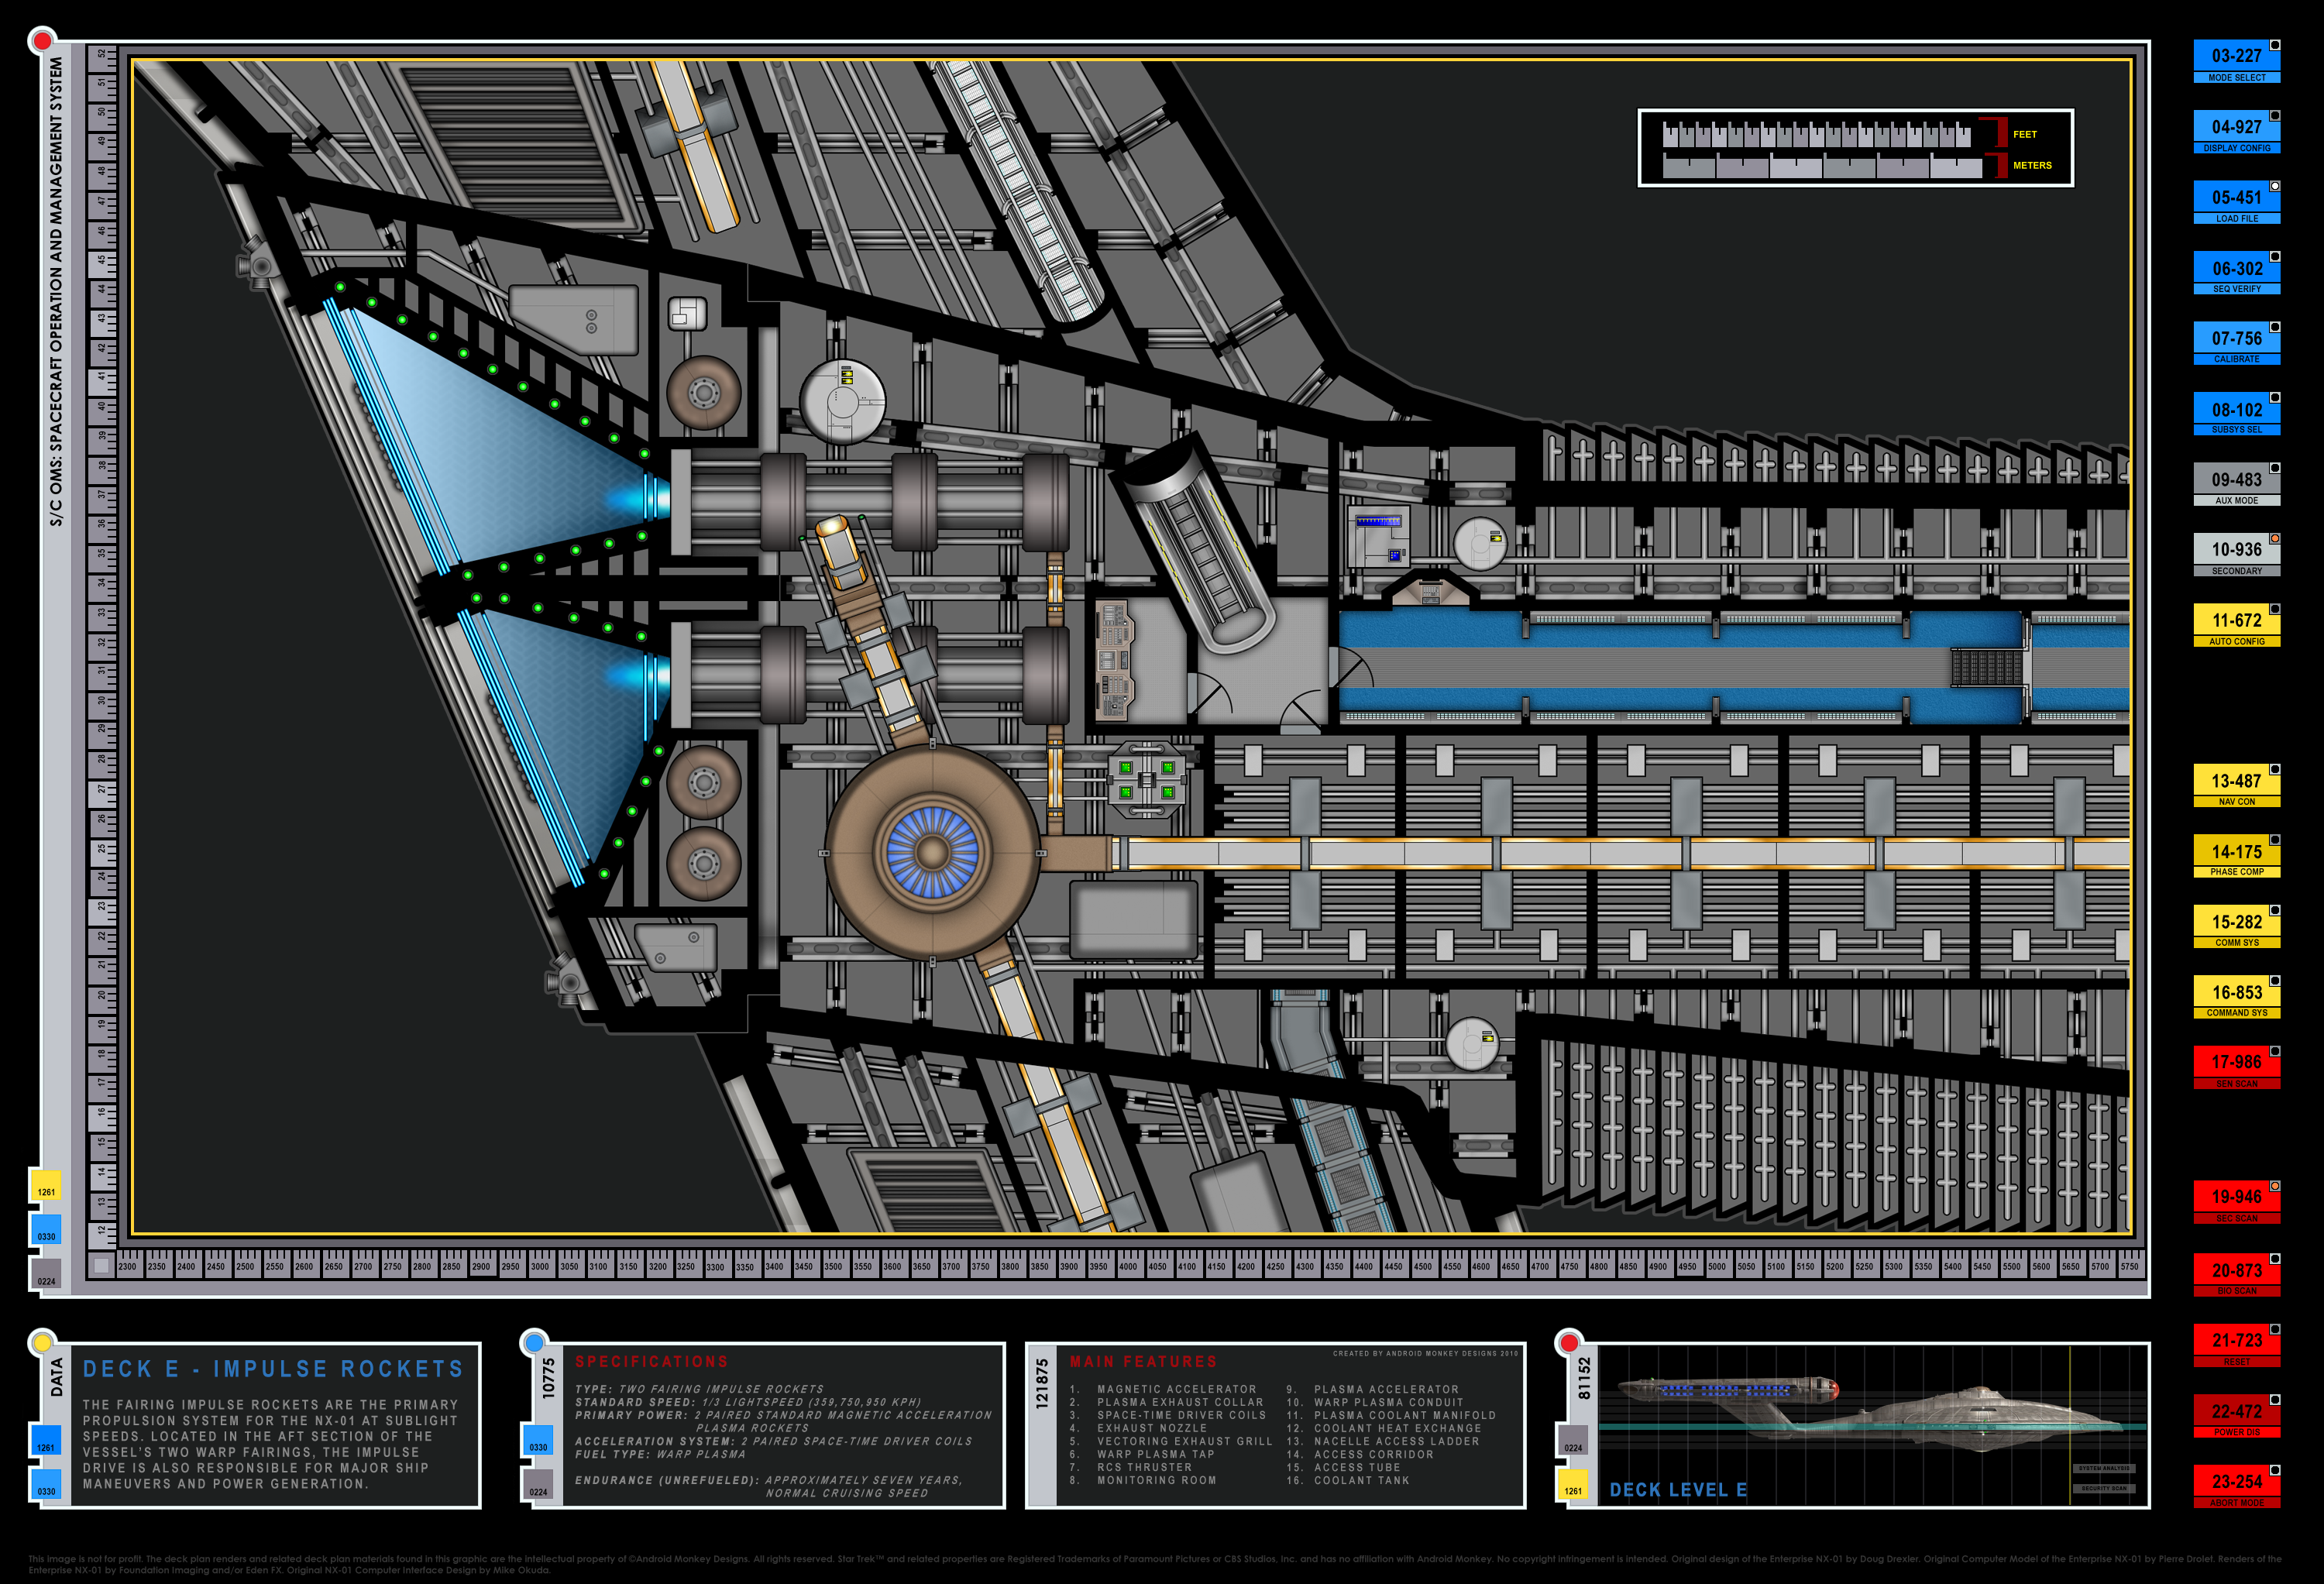 Colored Schematic Of Impulse Engines; Columbia Class Starship; U.S.S. Enterprise  NX 01